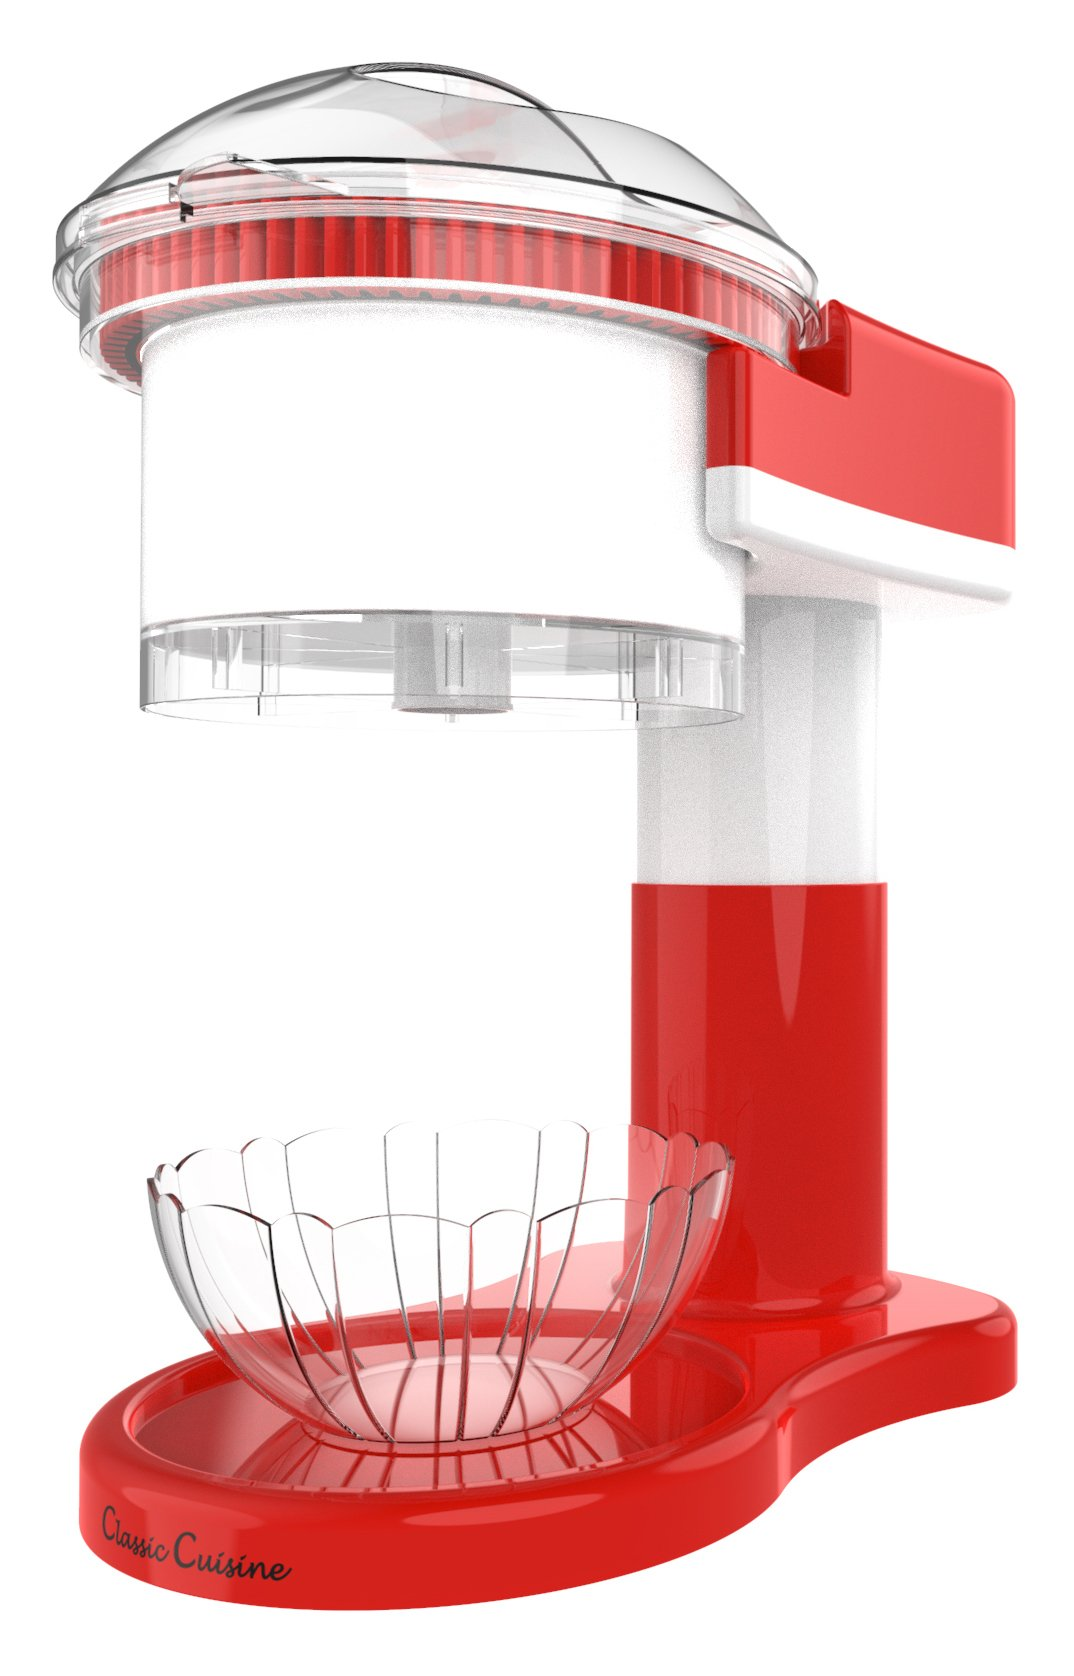 Shaved Ice Maker- Snow Cone, Italian Ice, and Slushy Machine for Home Use, Countertop Electric Ice Shaver/Chipper with Cup by Classic Cuisine by Classic Cuisine